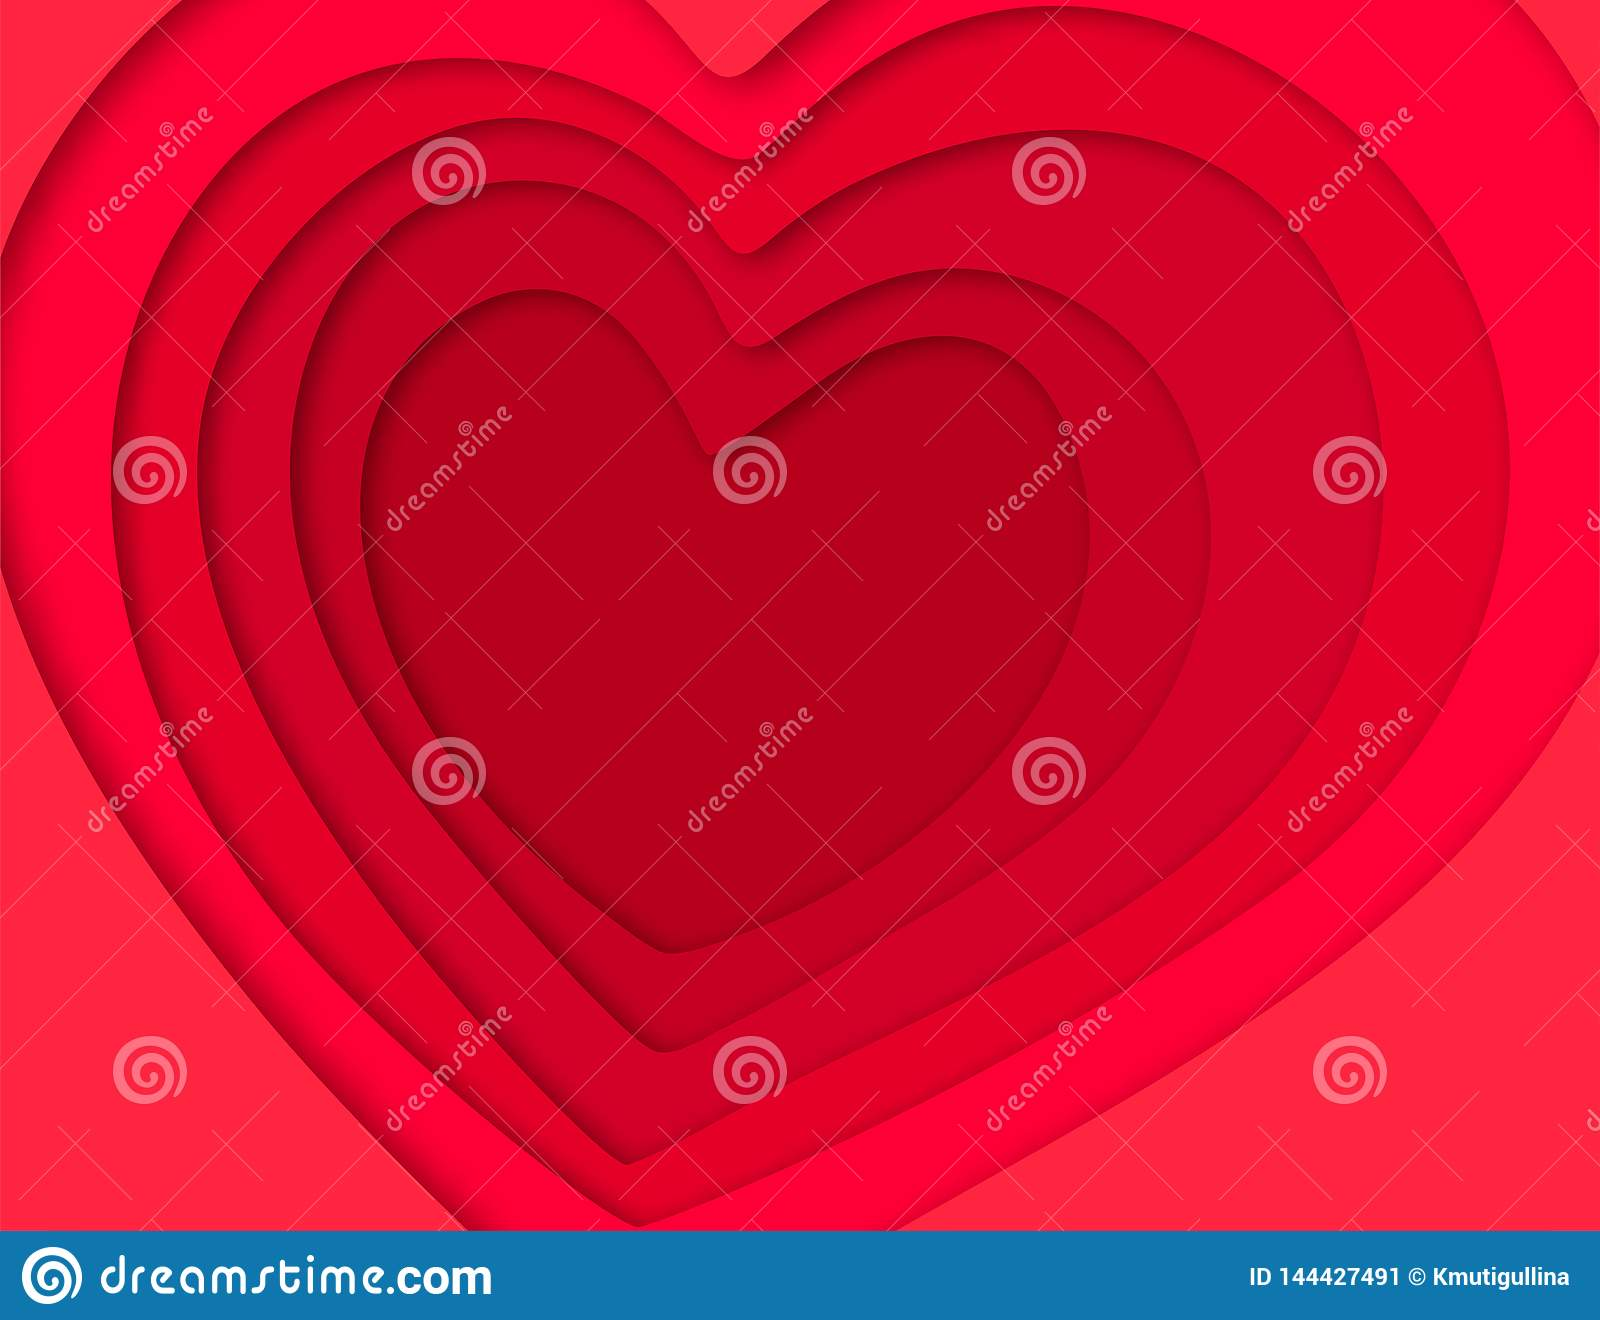 3D background with hearts paper cut